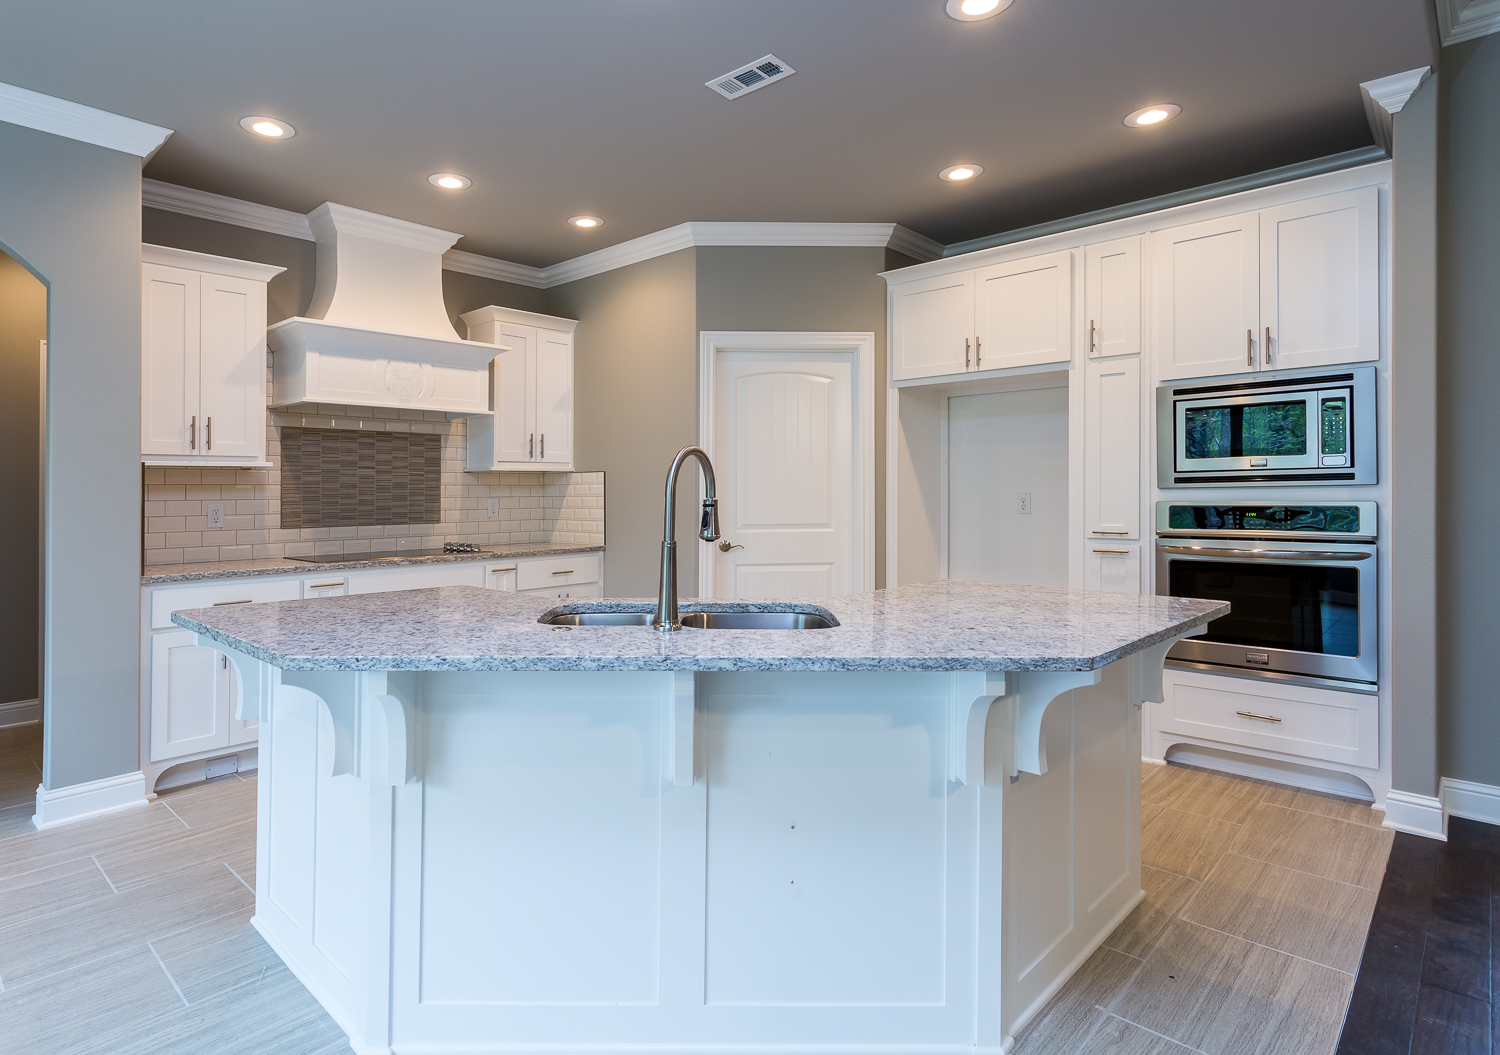 Real Estate photo of Kitchen in home located in Bella Vista.